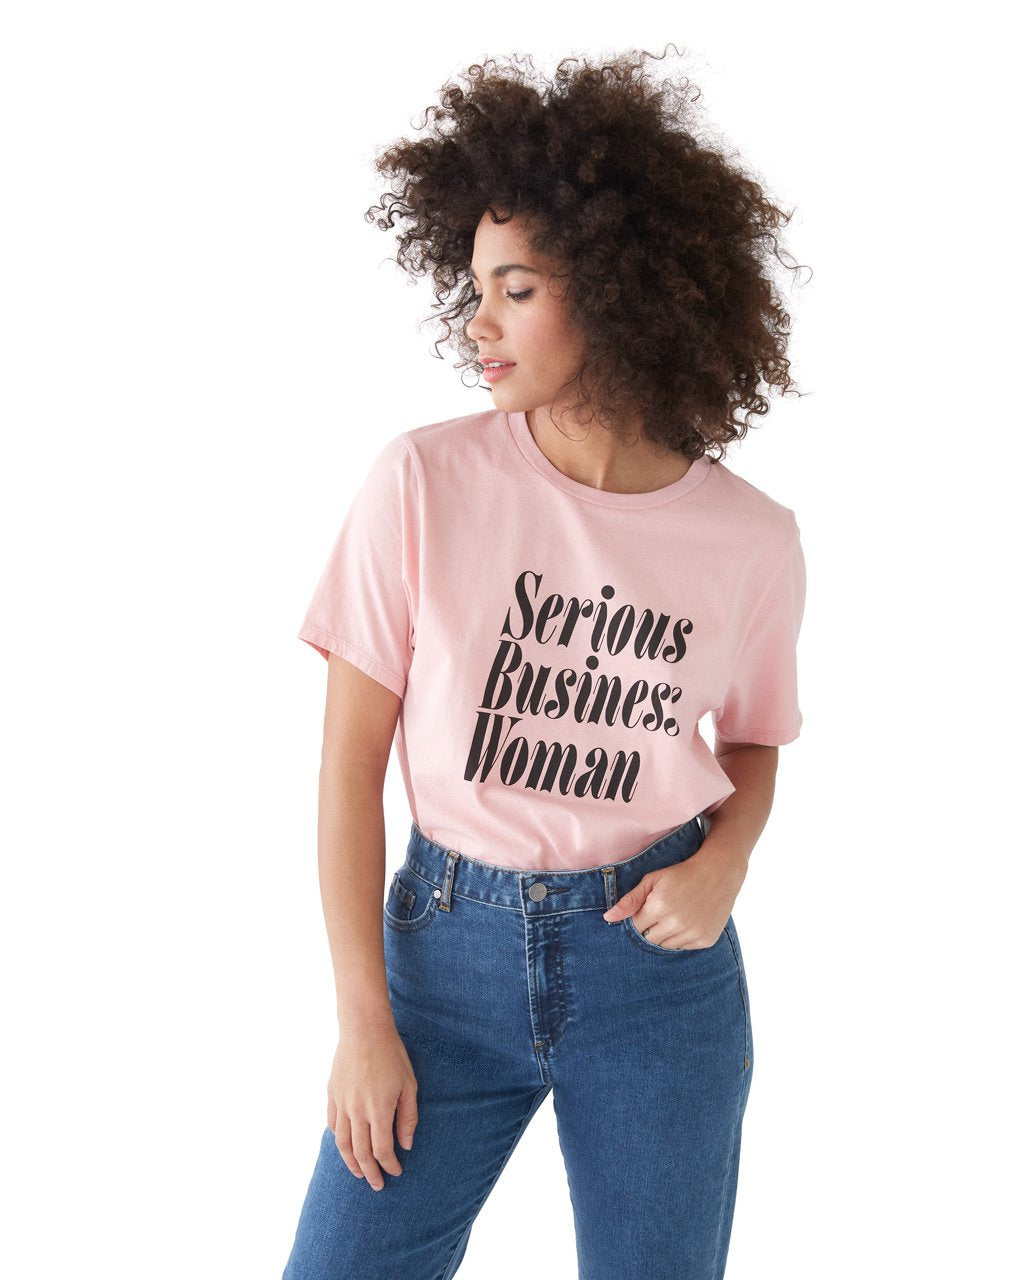 This tee comes in pink, with 'Serious Business Woman' printed in black across the front.